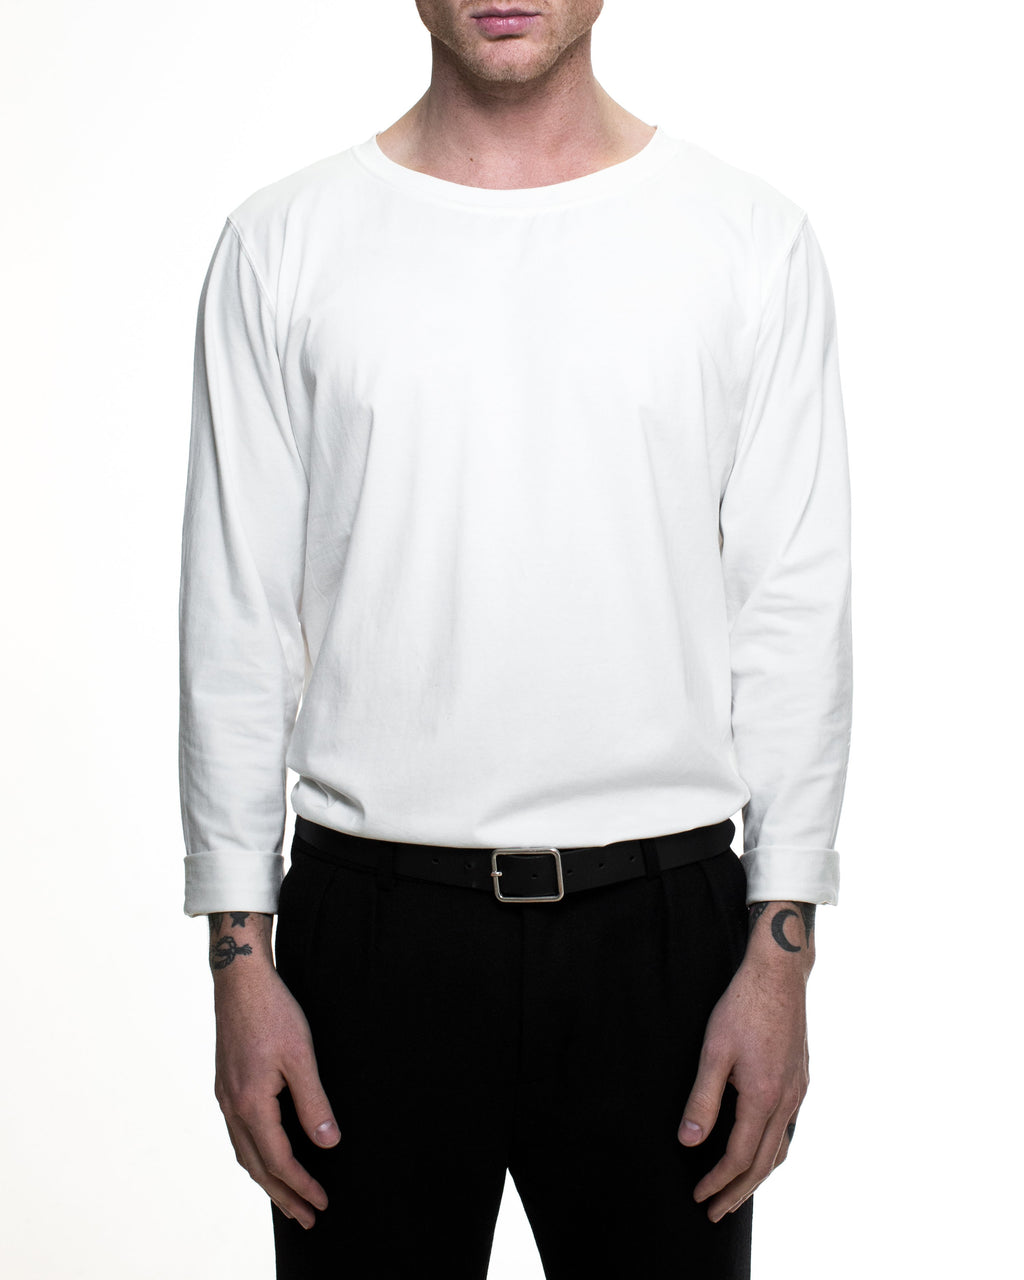 Hook Long Sleeve T-Shirt - White